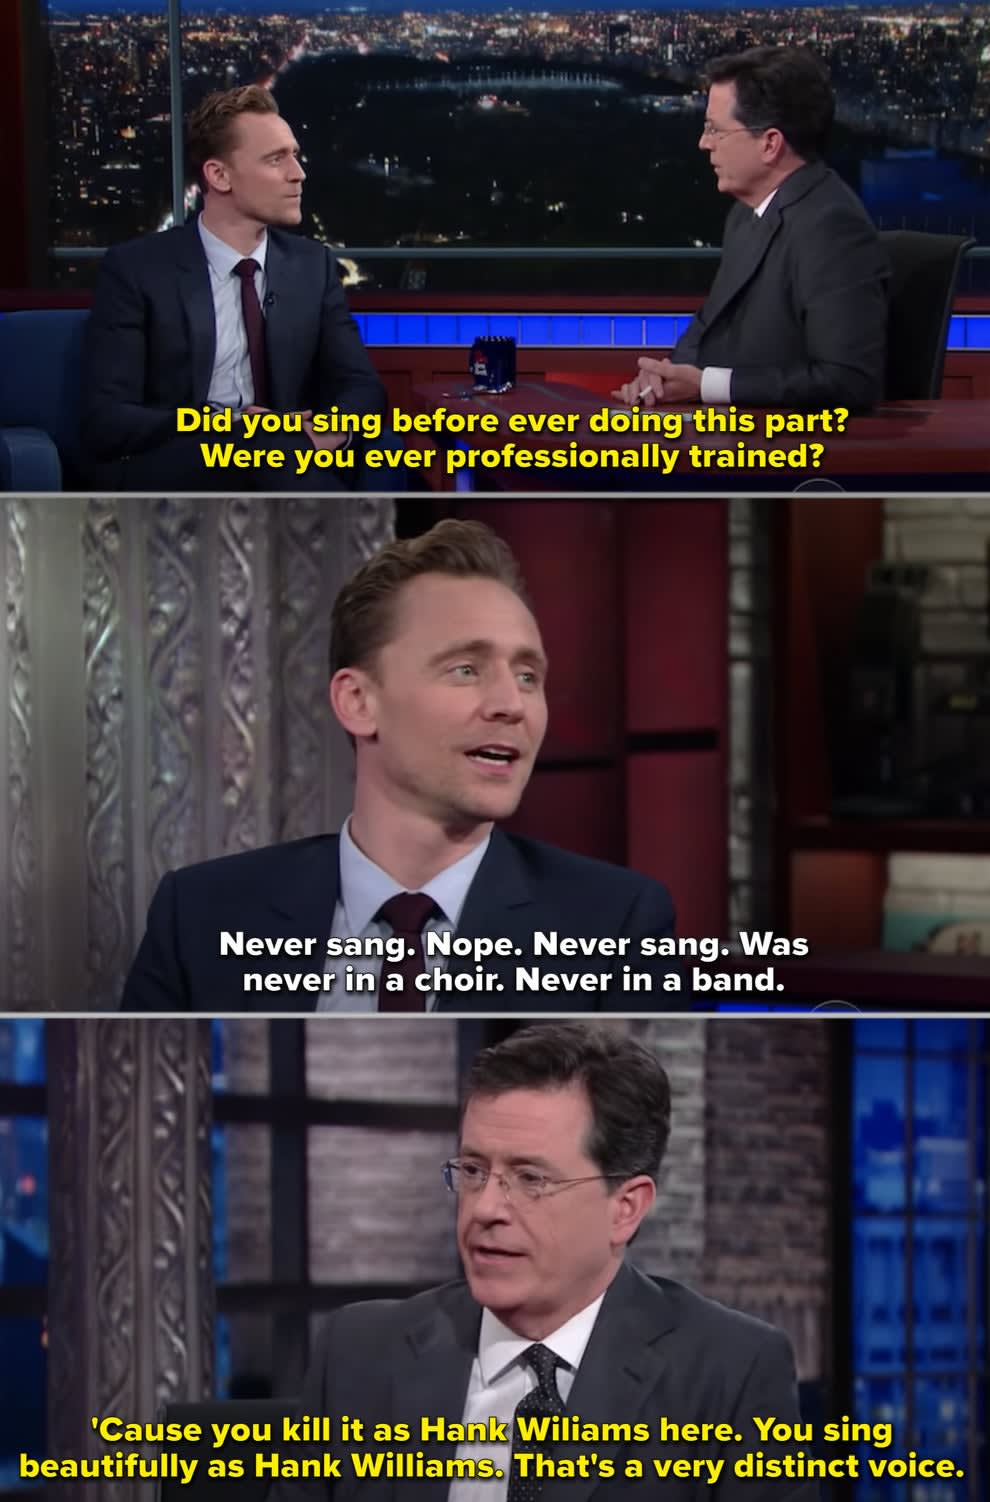 Tom singing with Stephen Colbert on his talk show